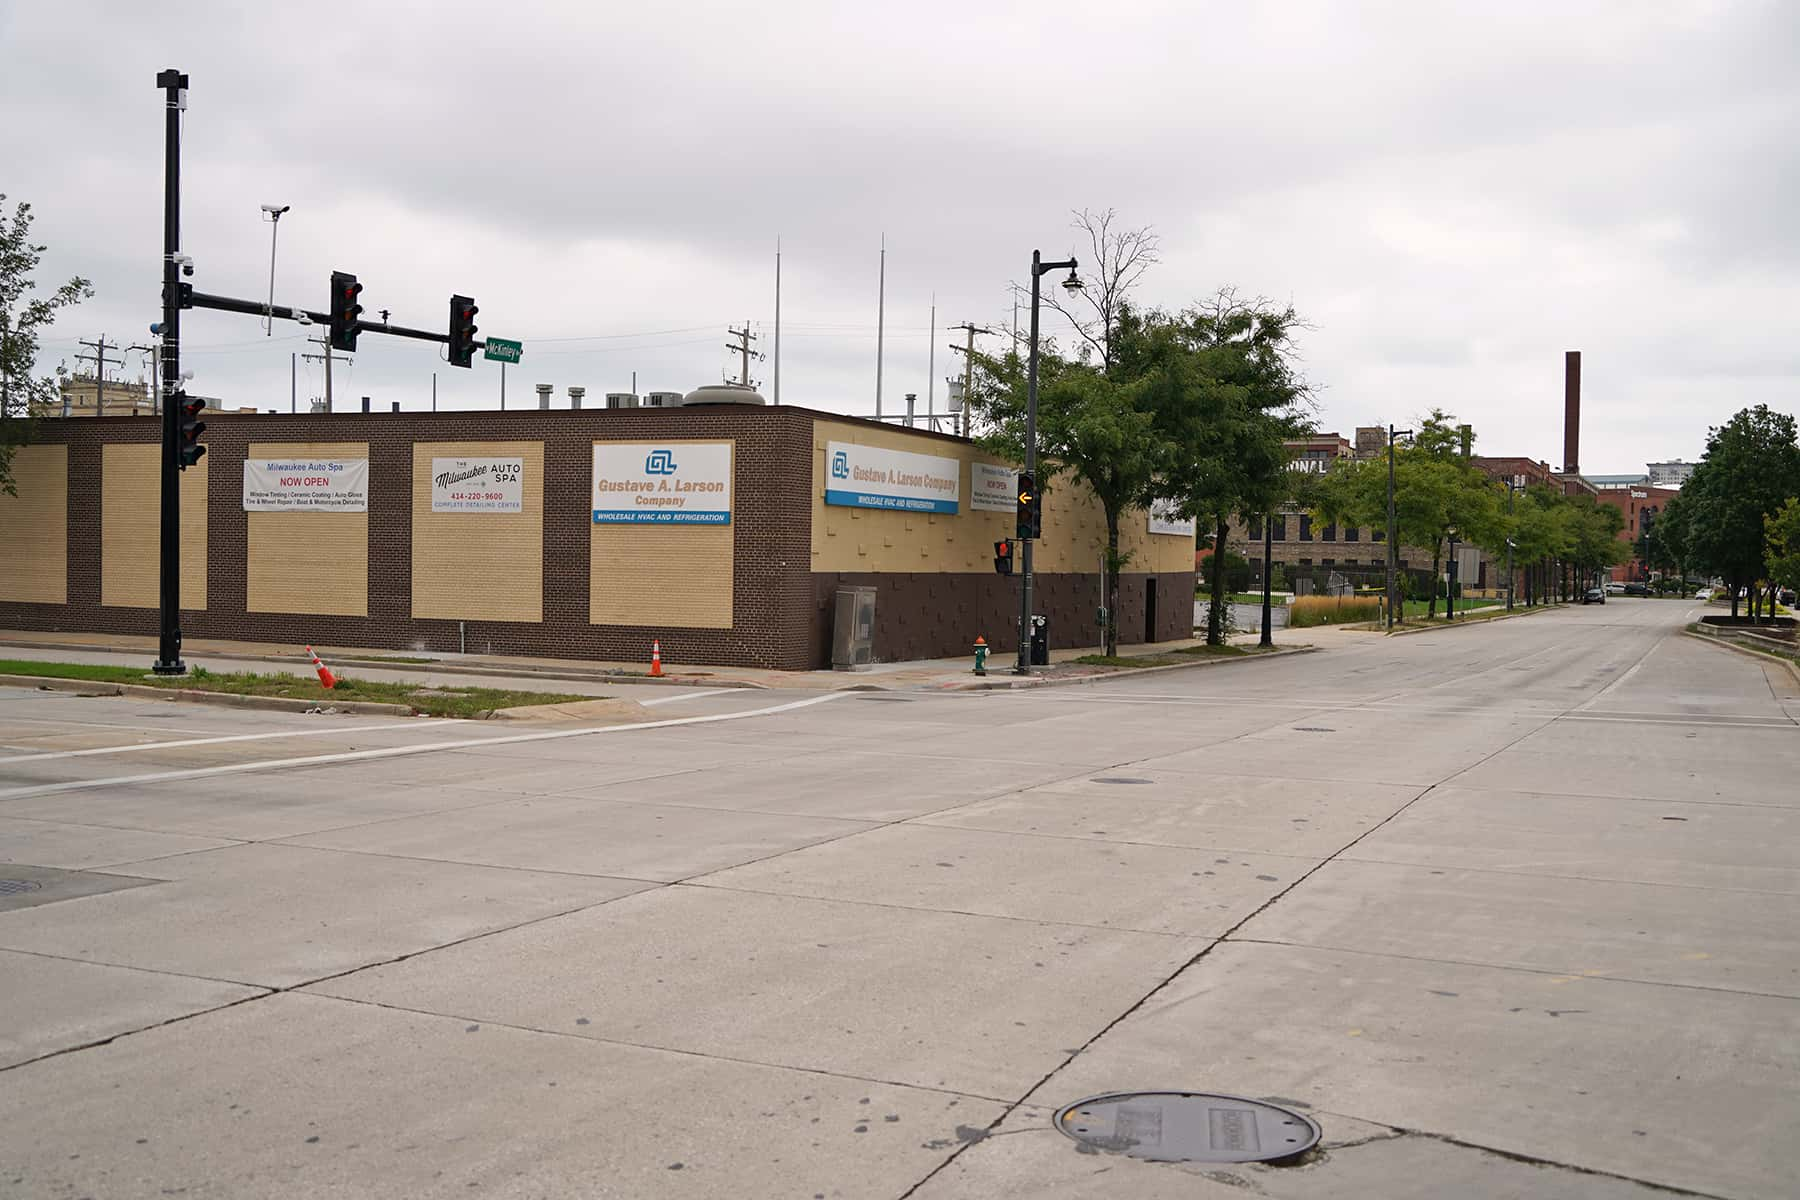 091420_newmuseumsite_566